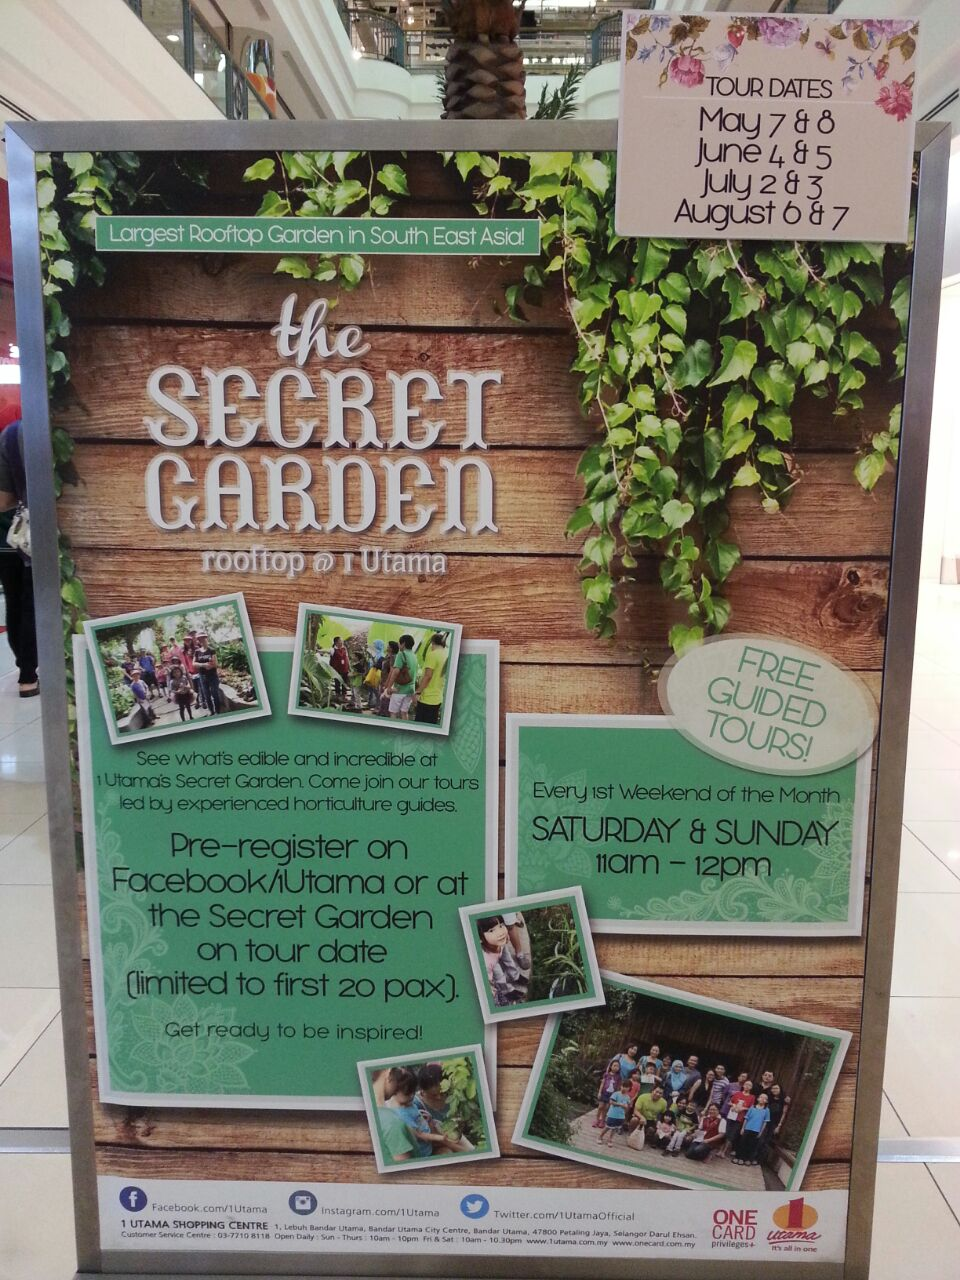 Outstation Might Get You Trap N Traffic And Yes We Are Going To The Secret Garden Of 1 Utama